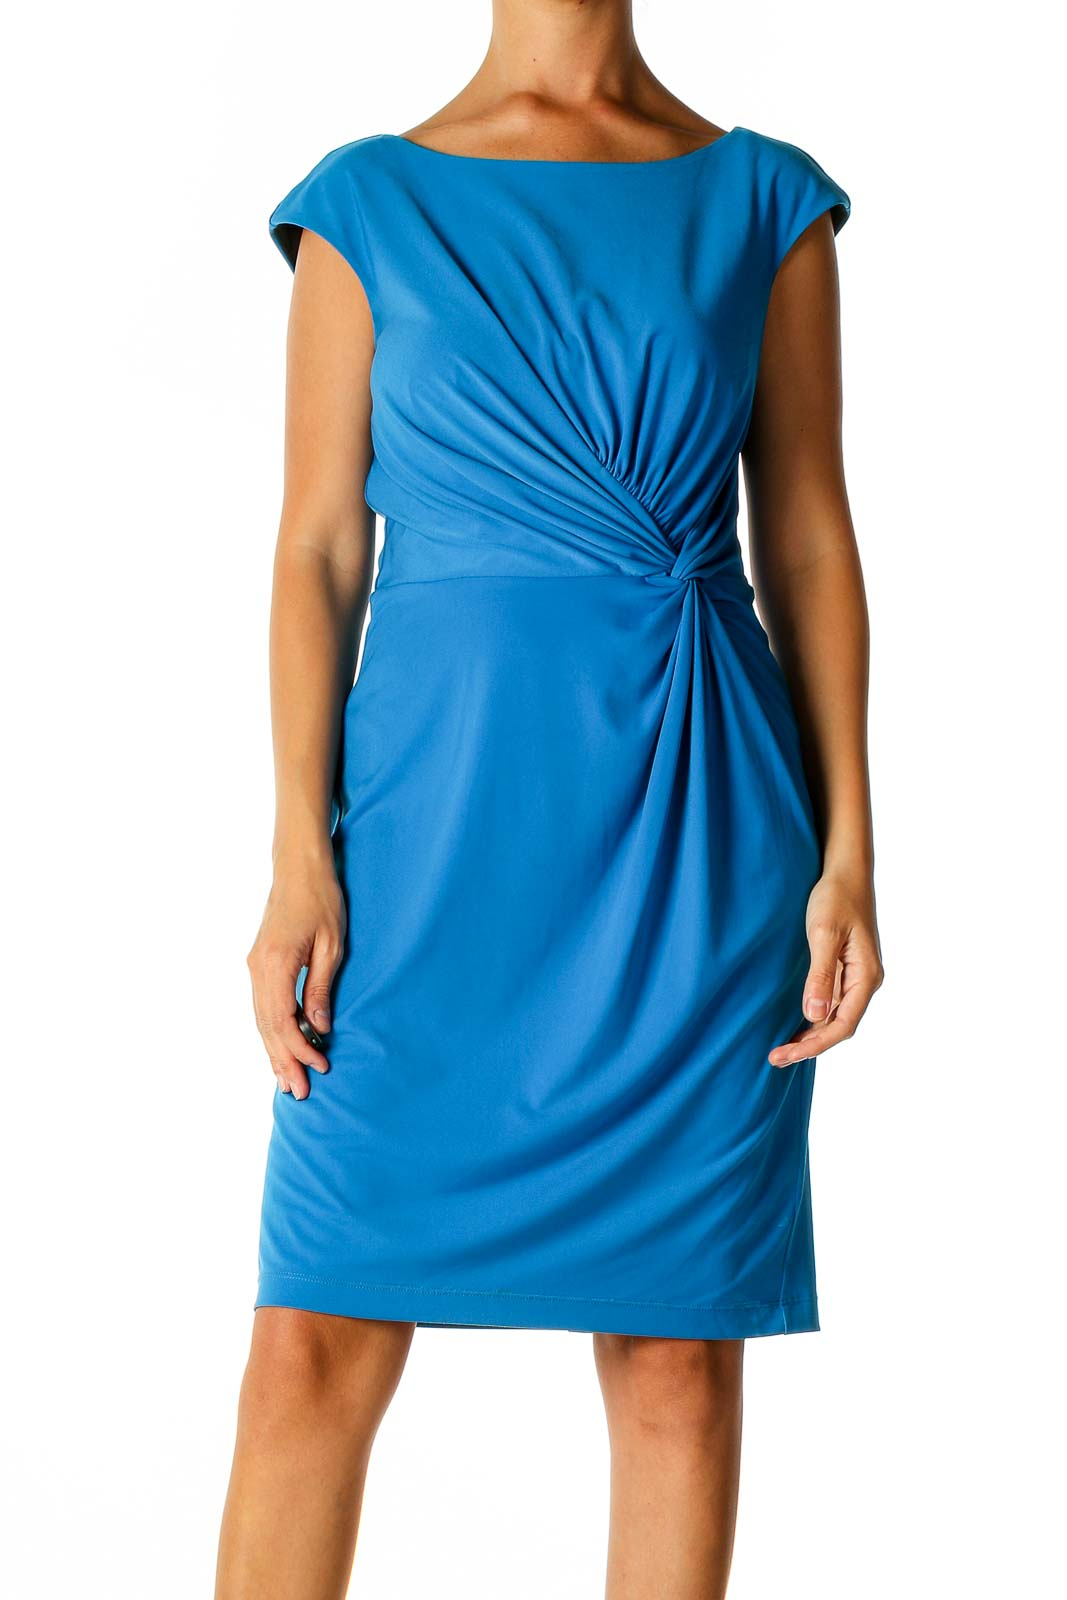 Blue Solid Classic Sheath Dress Front